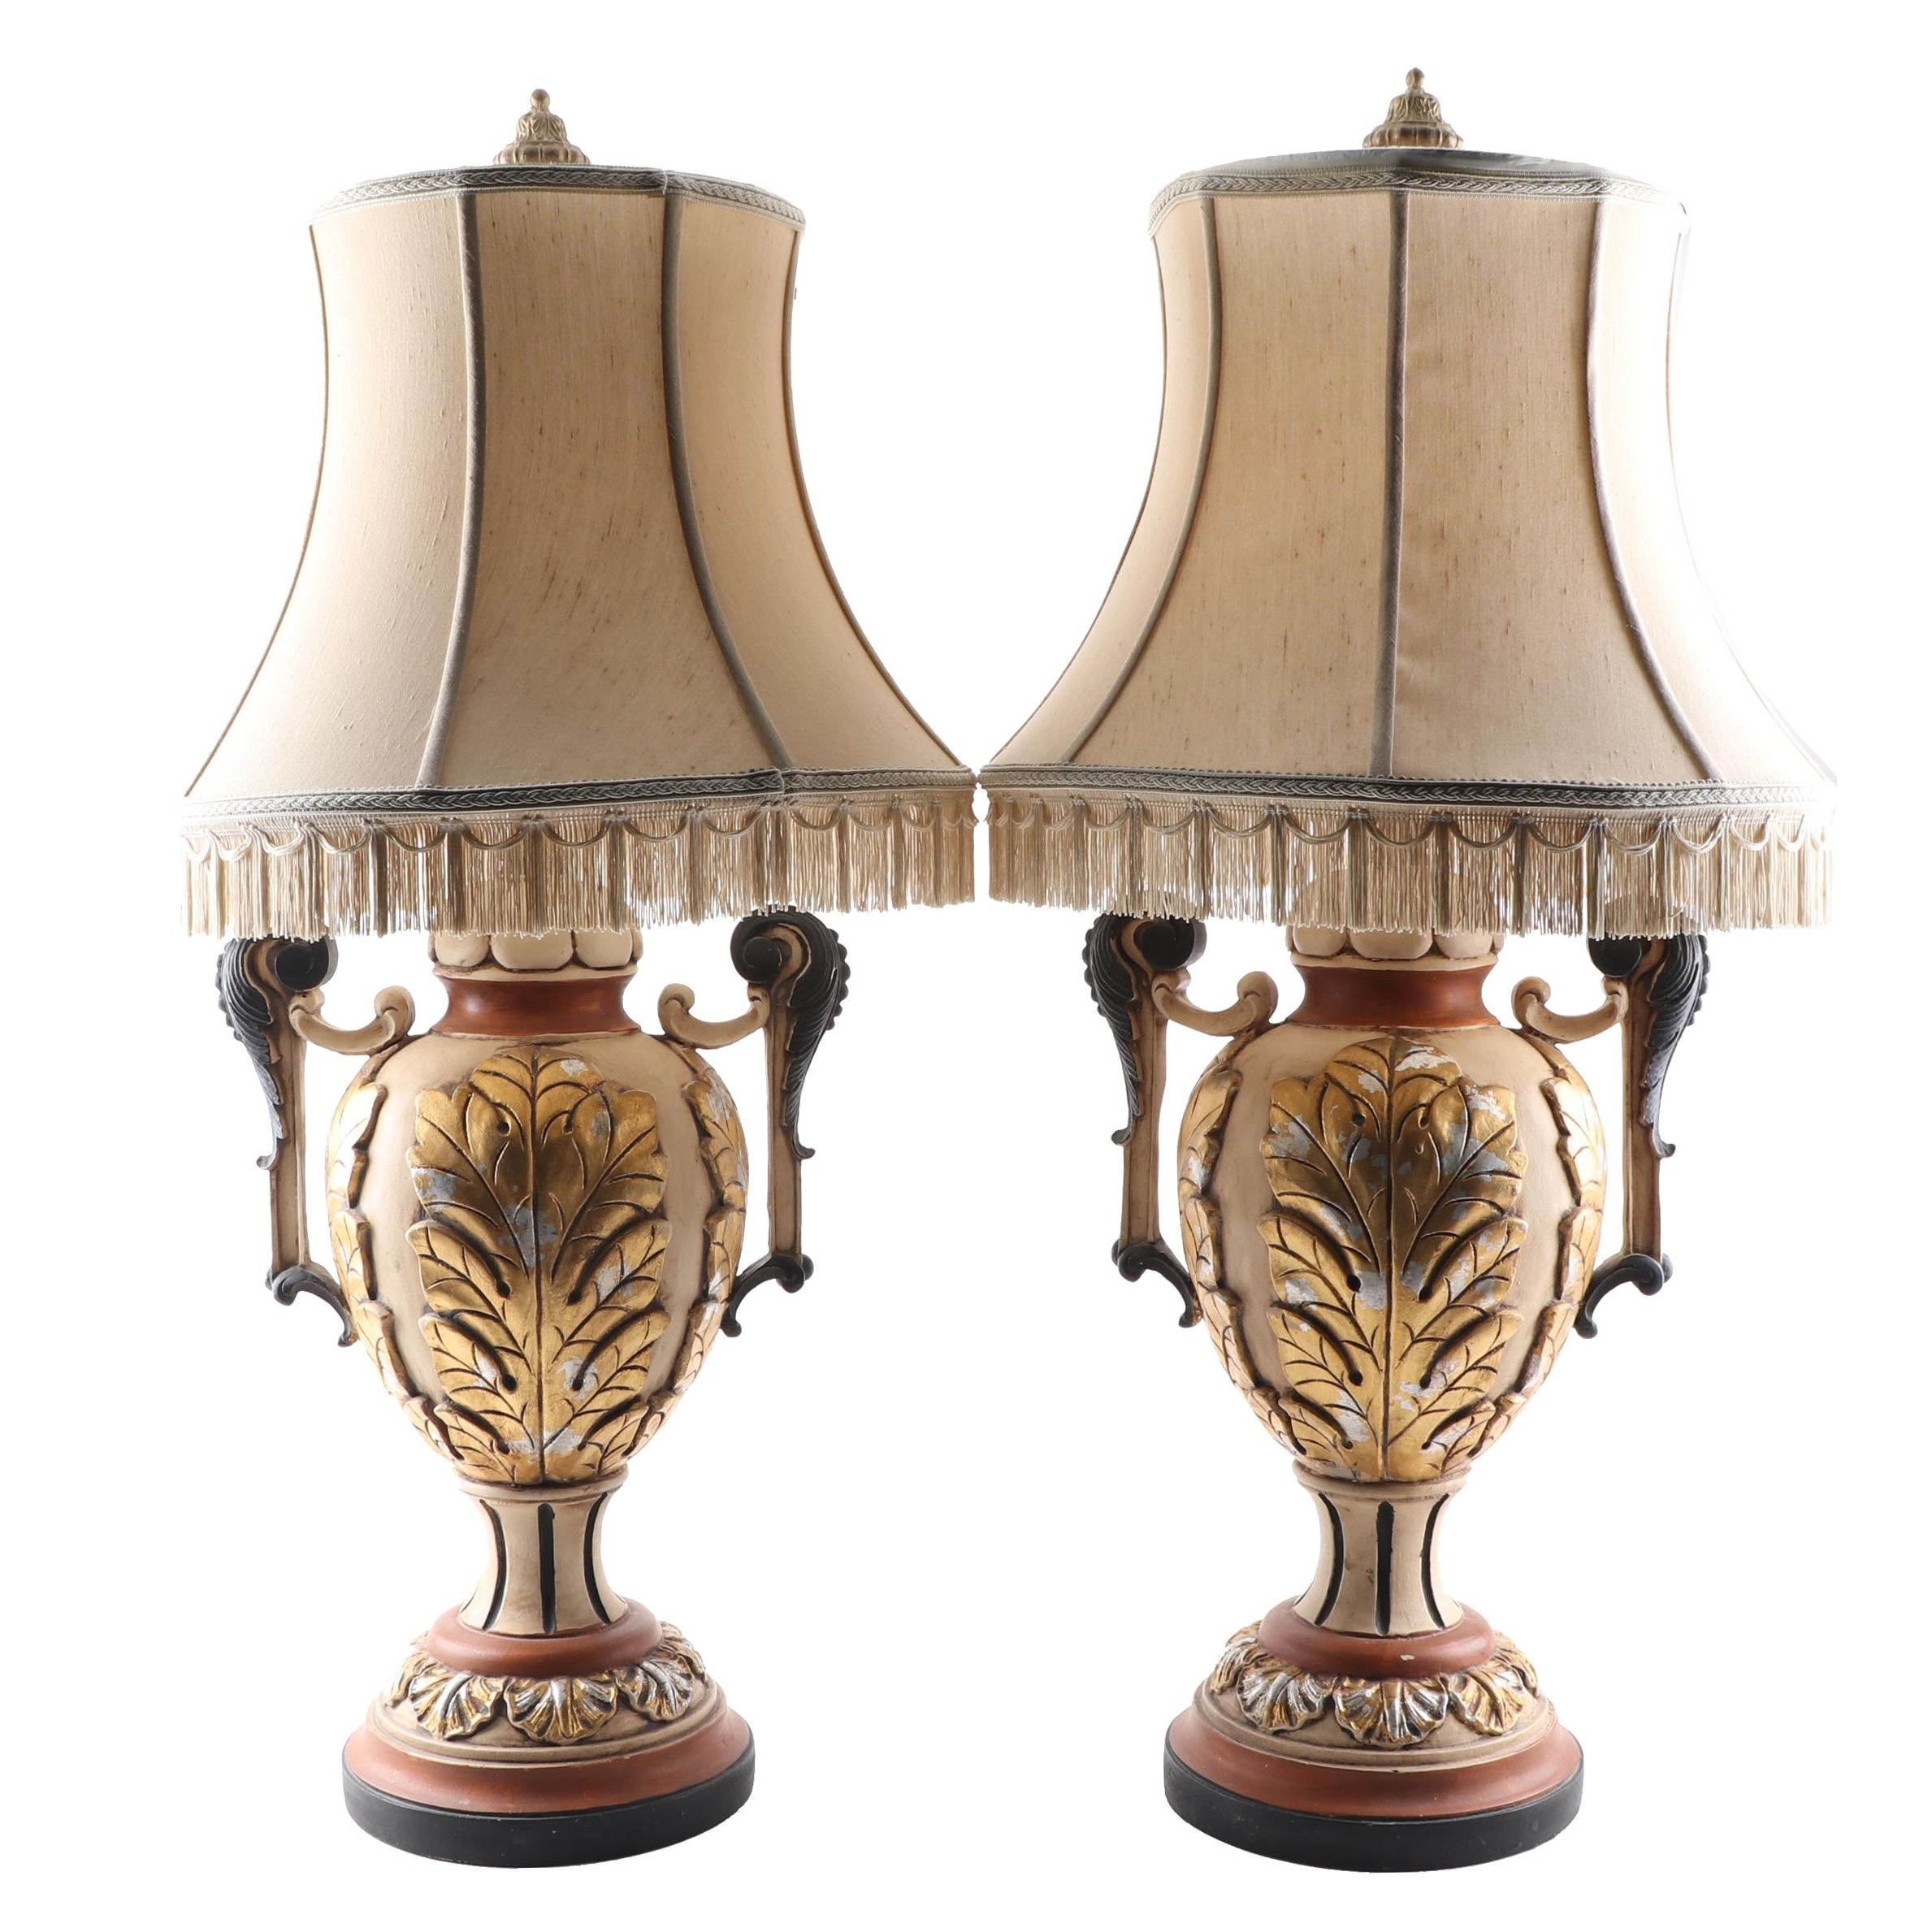 Chelsea House Acanthus Motif Amphora Form Table Lamps